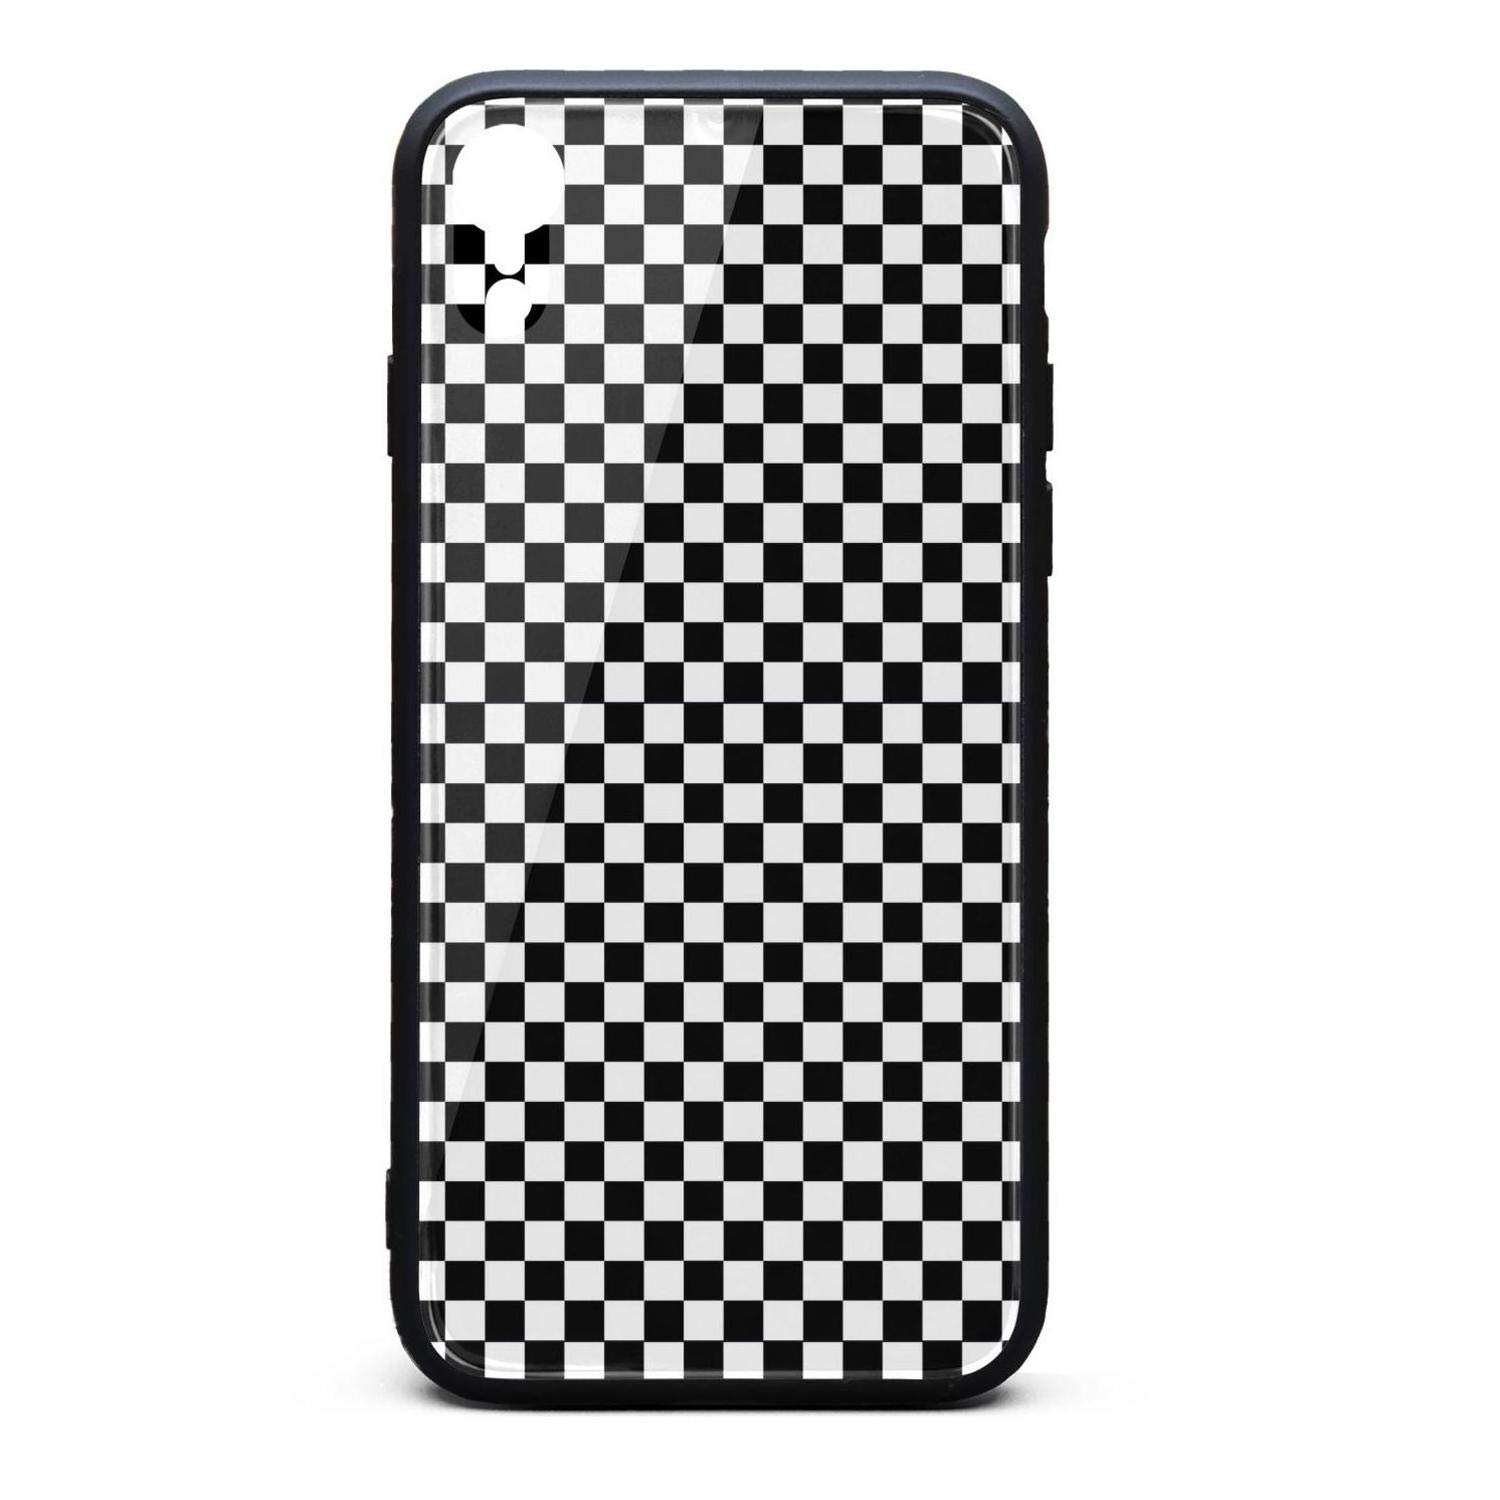 huge selection of e09c7 fe92e Wave Black and White Checkered Phone Case for iPhone xr, Slim Protection  Art Line Design Cell Phone Protective Case